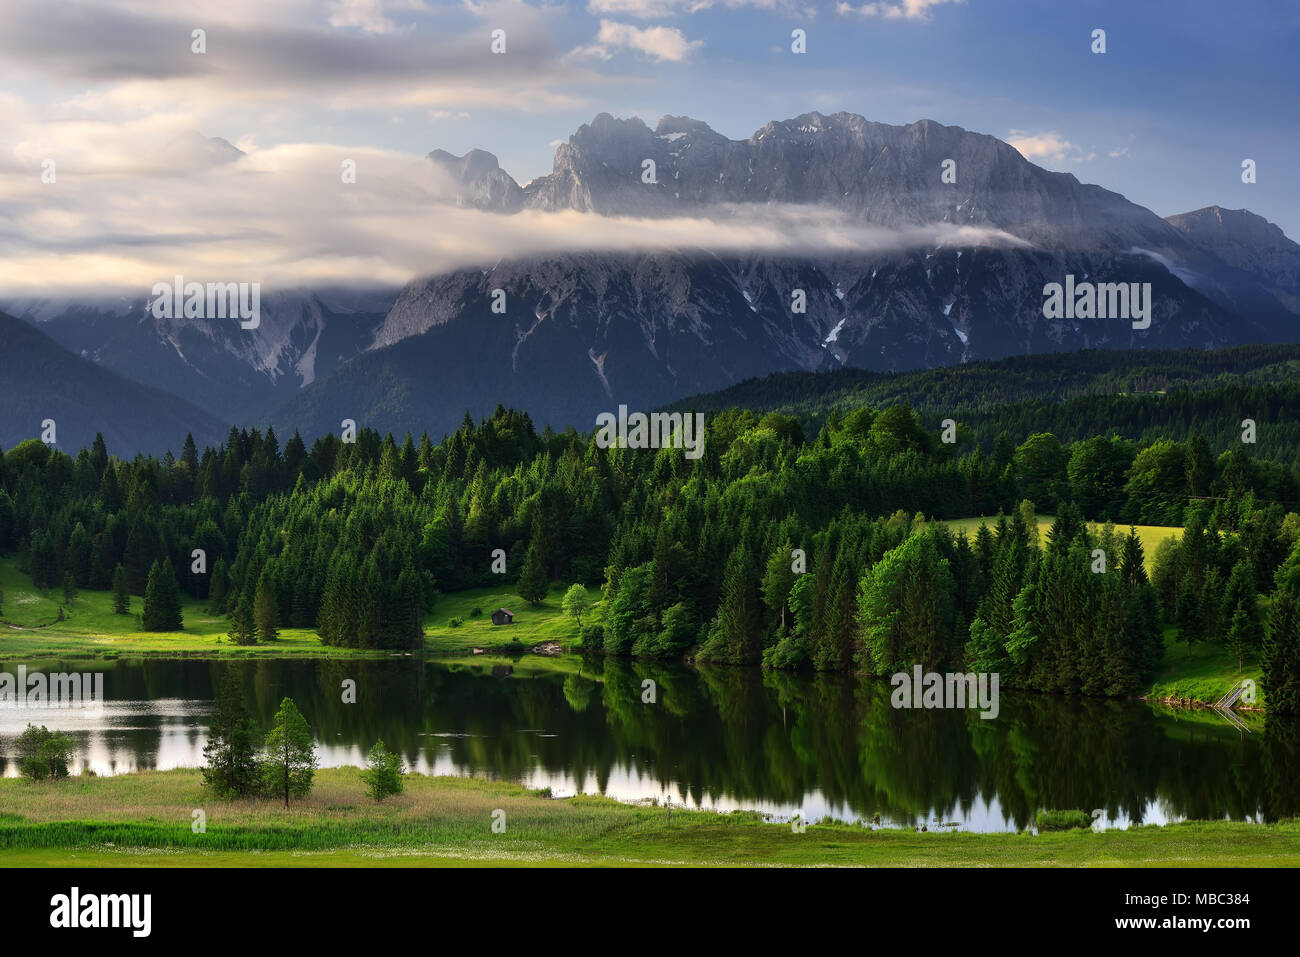 Geroldsee lake during morning sunrise with foggy clouds over mountain peaks, Bavarian Alps, Bavaria, Germany. - Stock Image